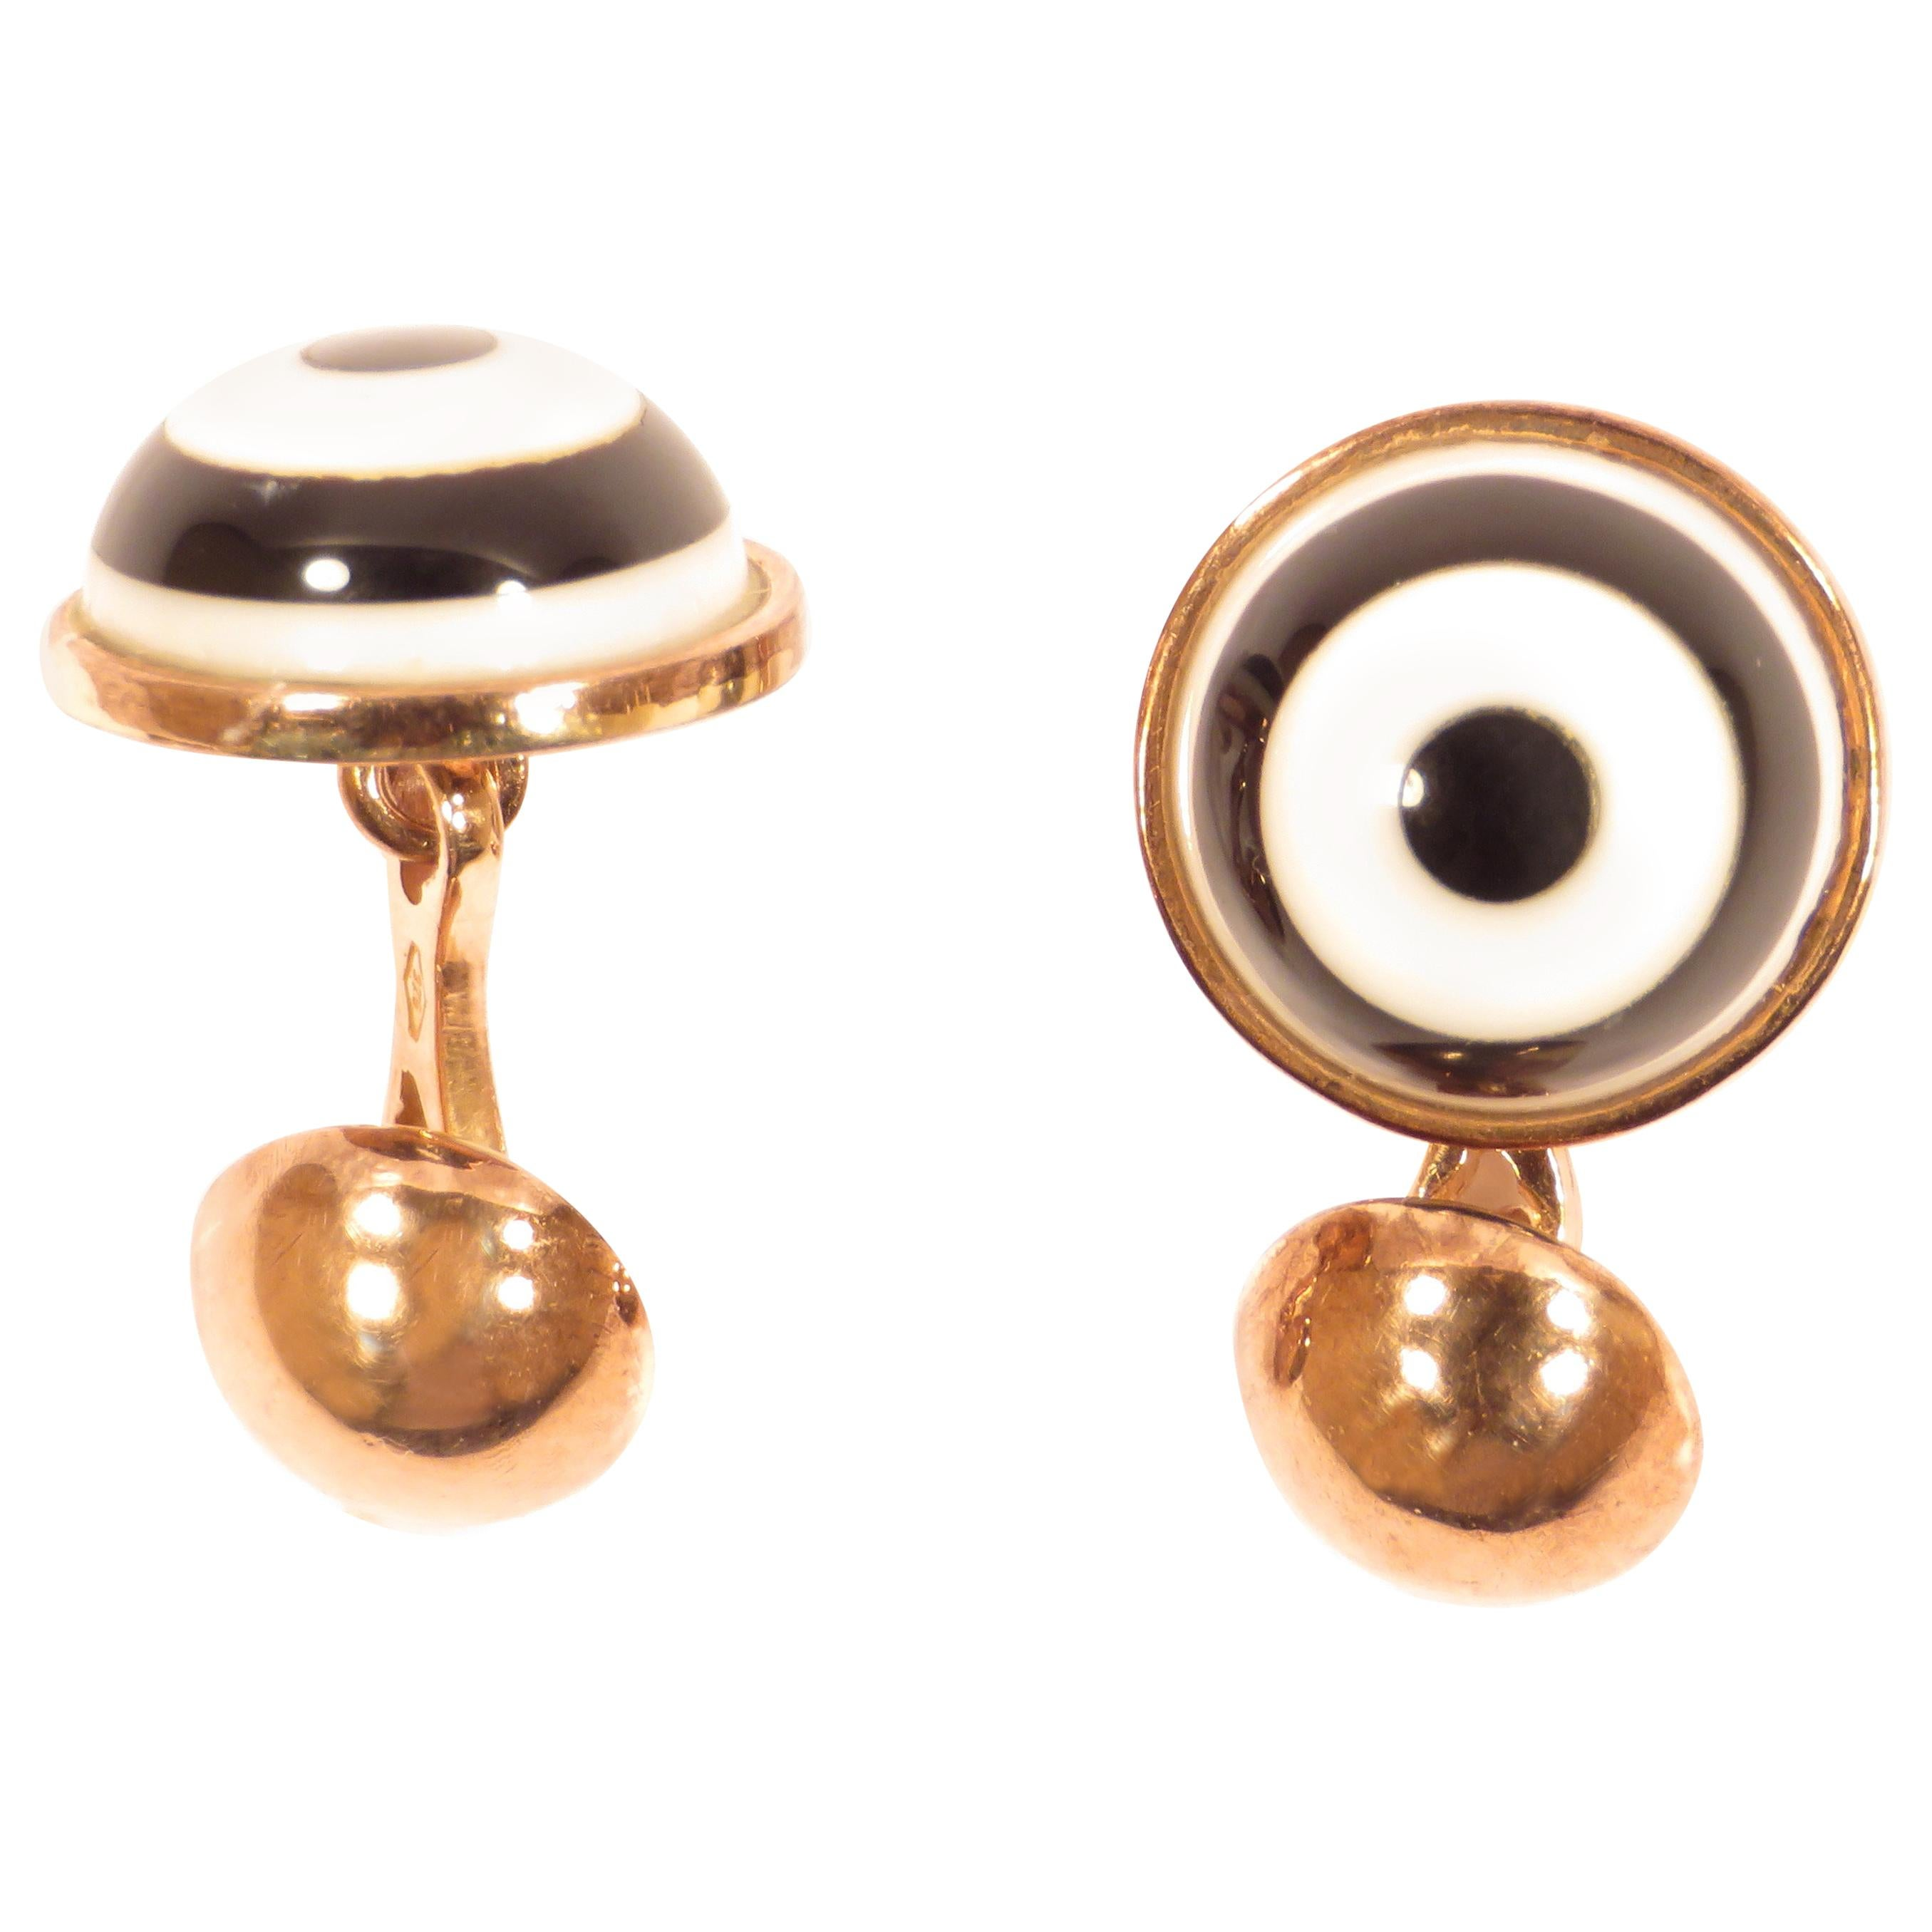 White Agate Onyx 9 Karat Gold Cufflinks Handcrafted in Italy by Botta Gioielli